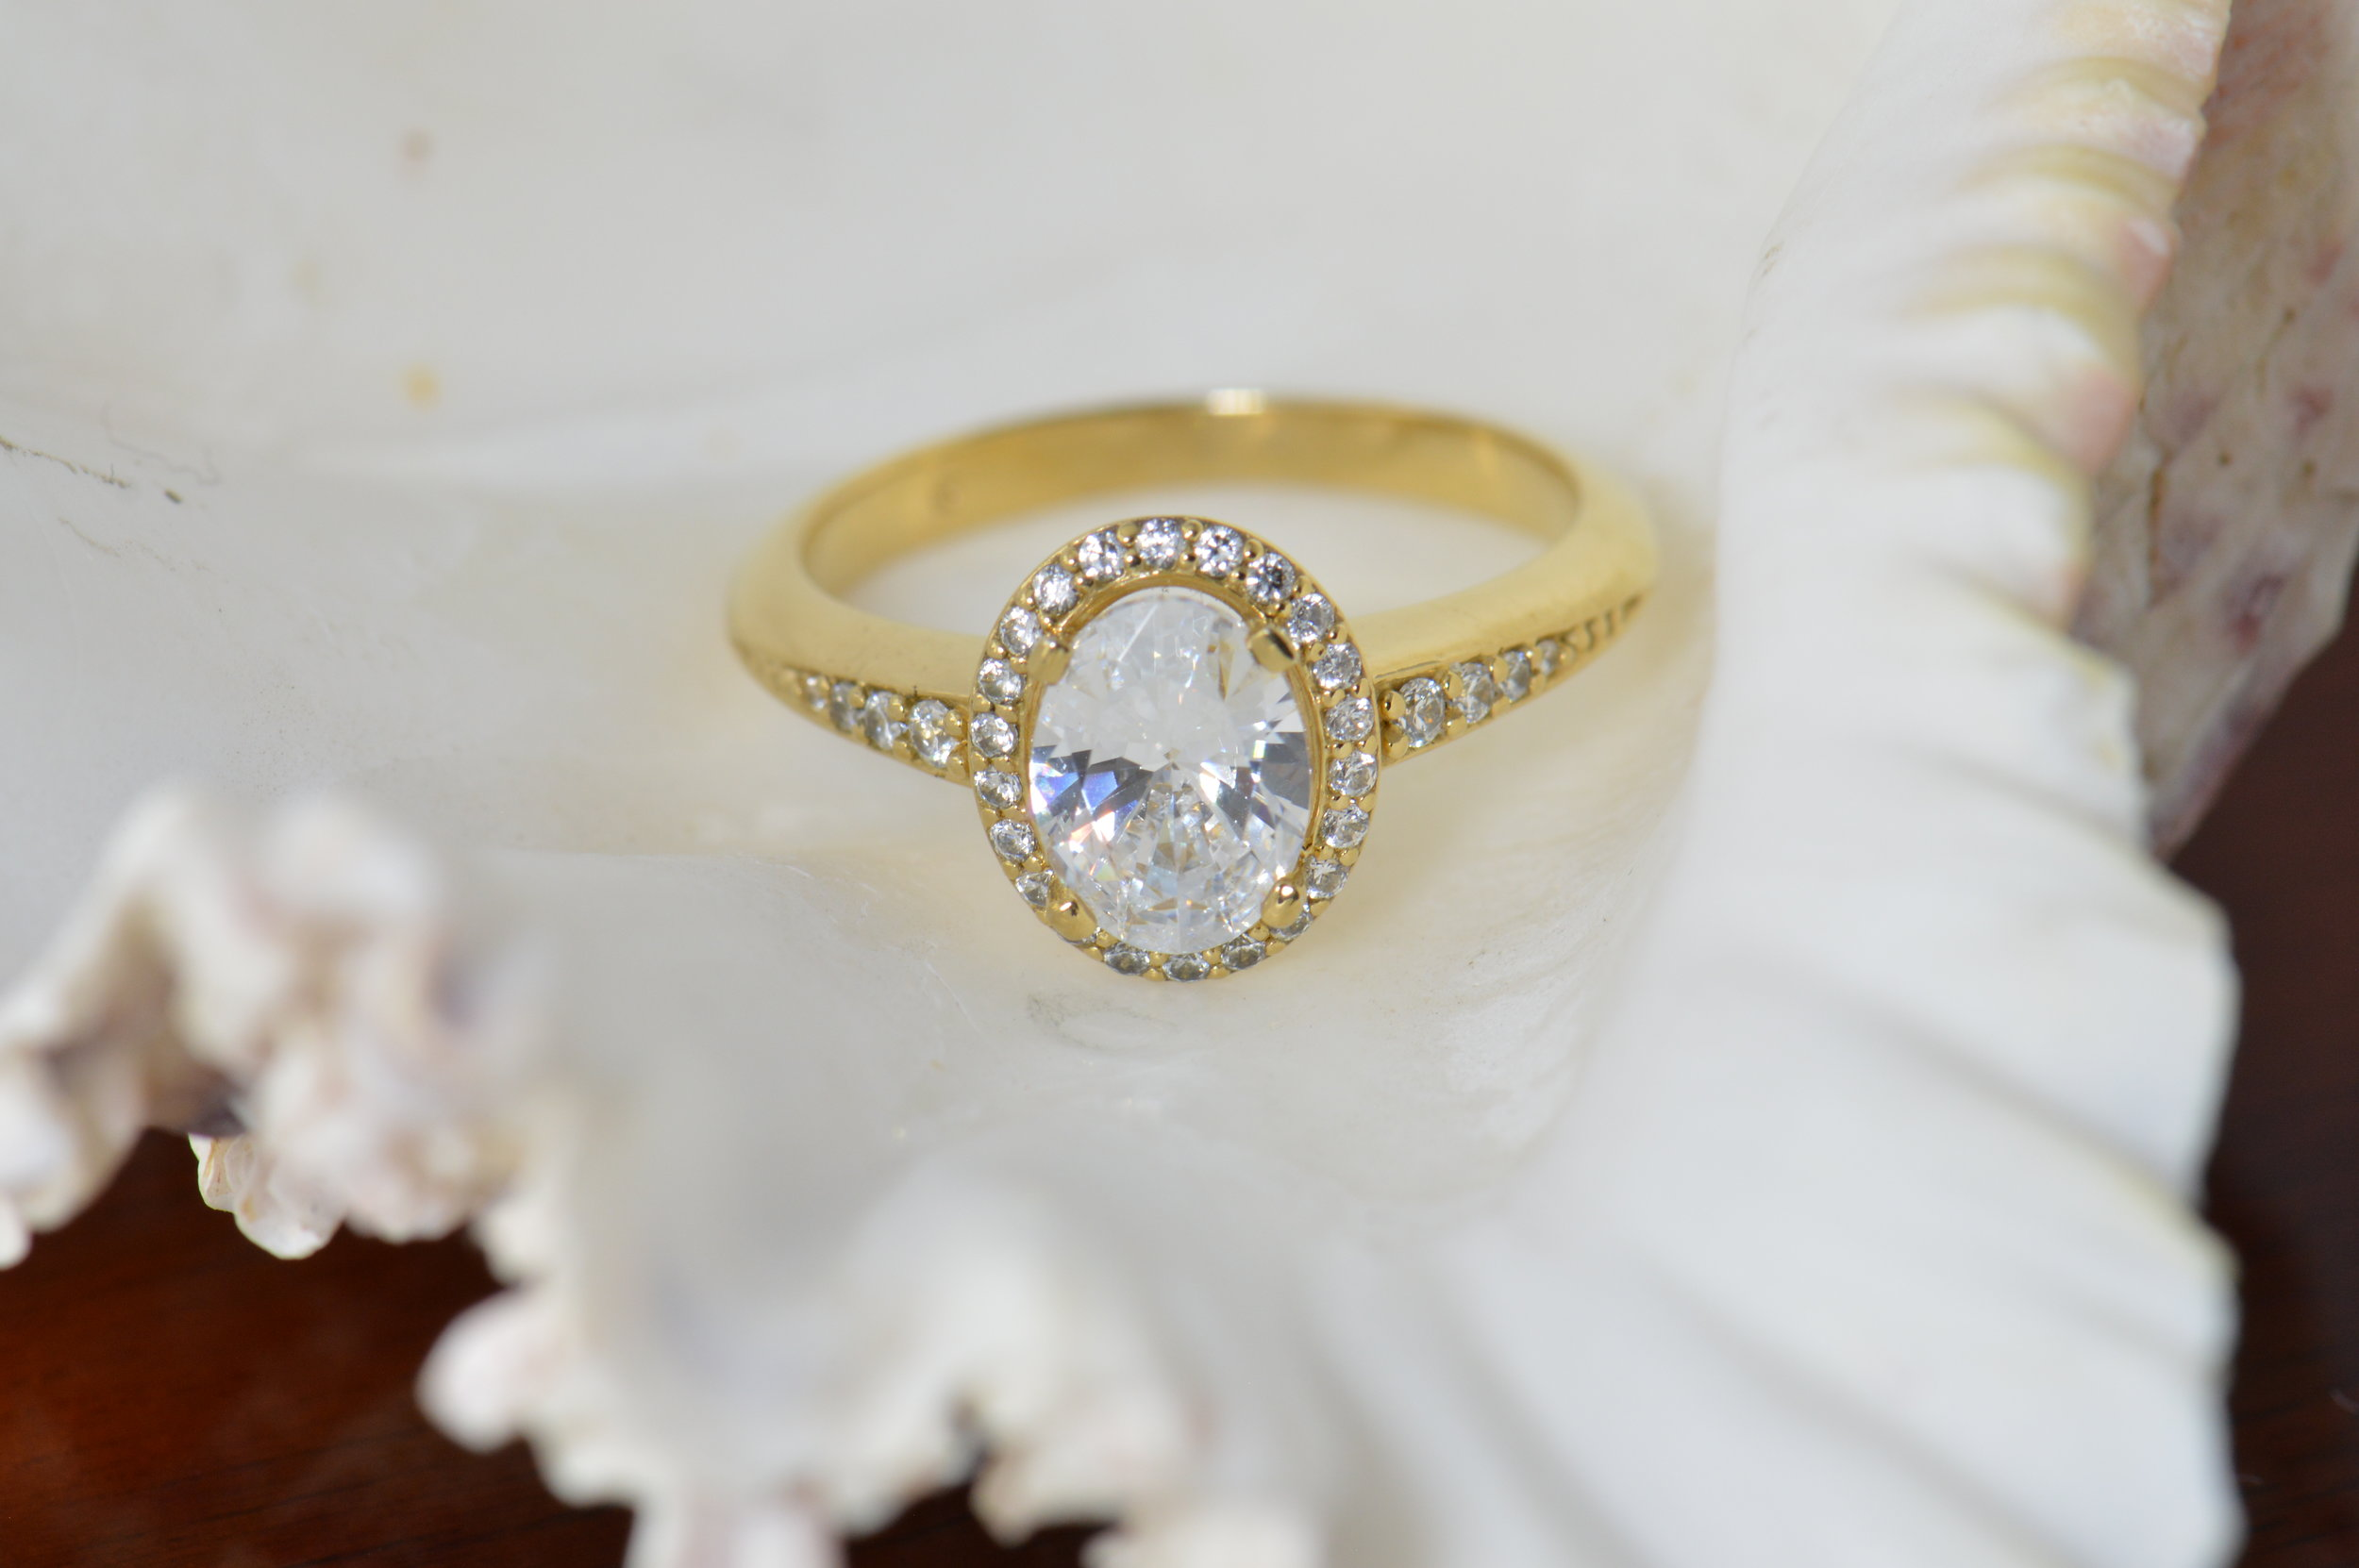 darvier-oval-halo-yellow-gold-ring.JPG